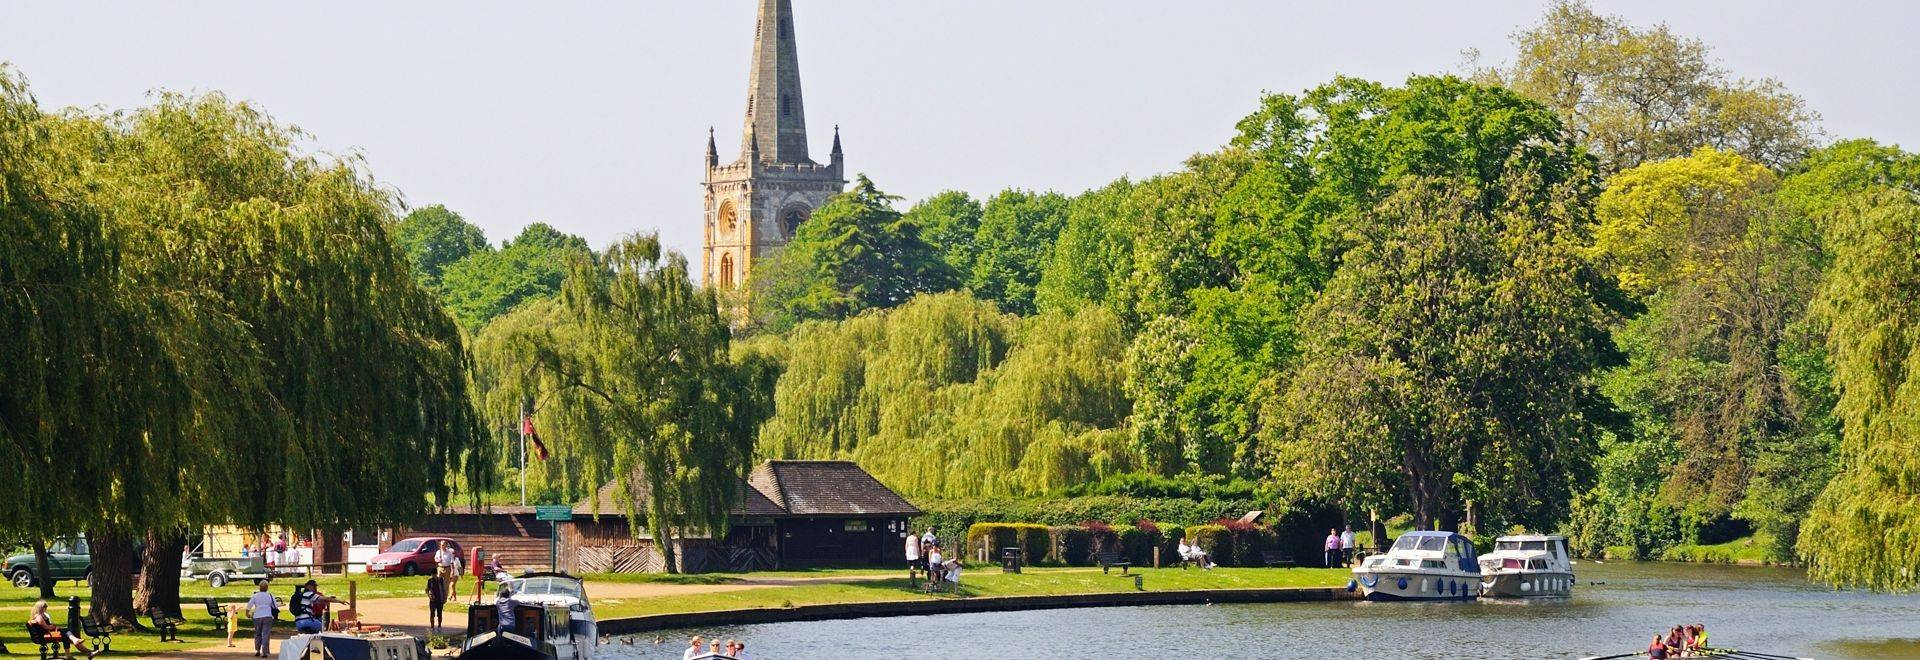 Shutterstock 196664249 River Avon Towards The Holy Trinity Church